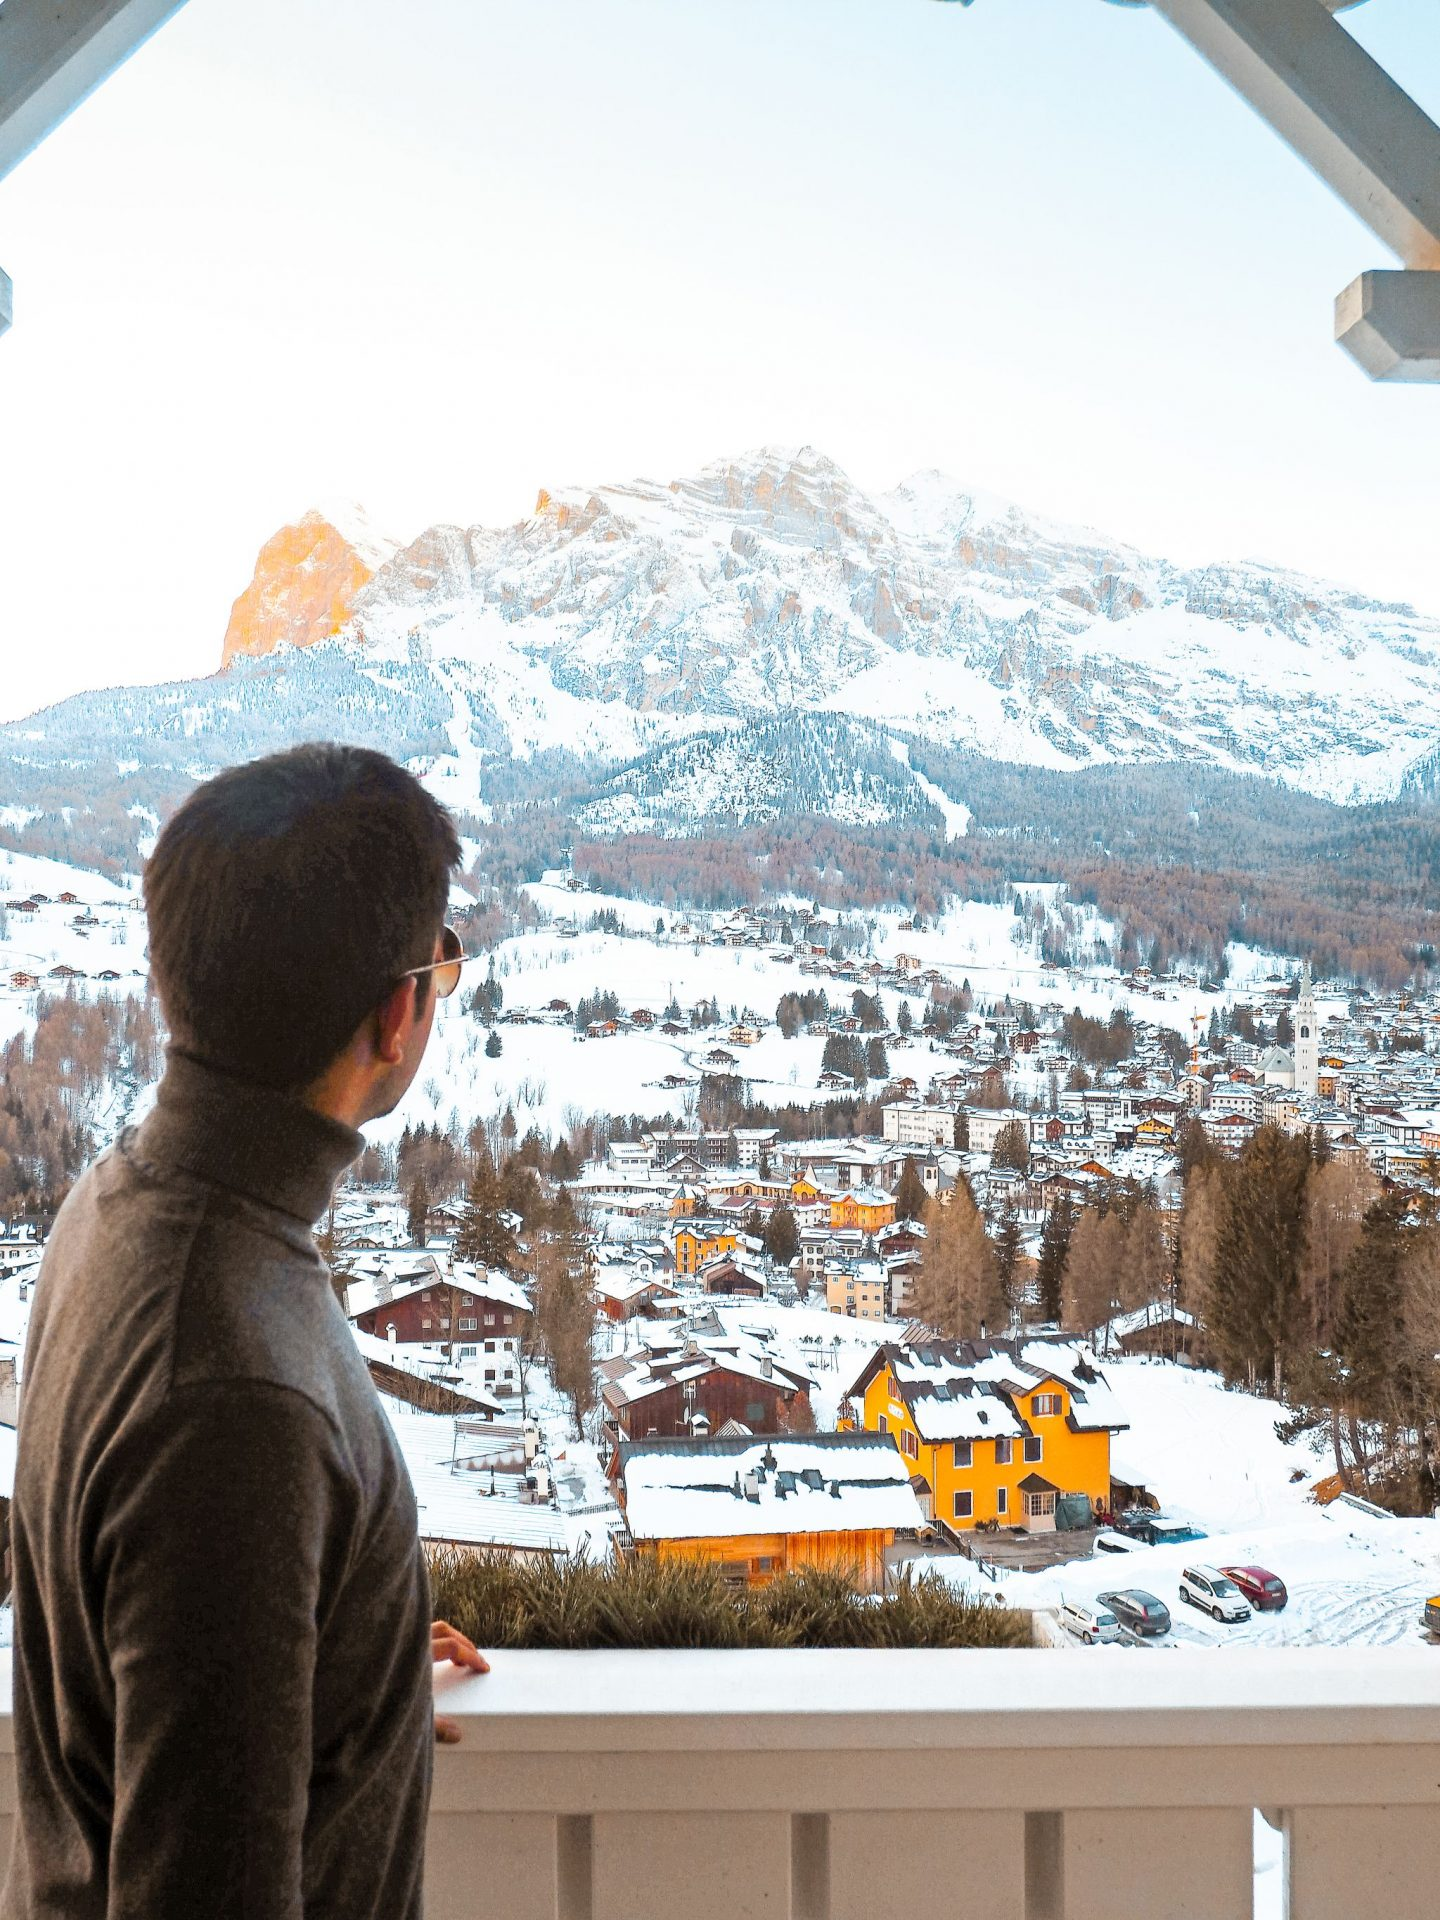 The 2019 Edit: Progress - Aftab overlooking mountains of Cortina.